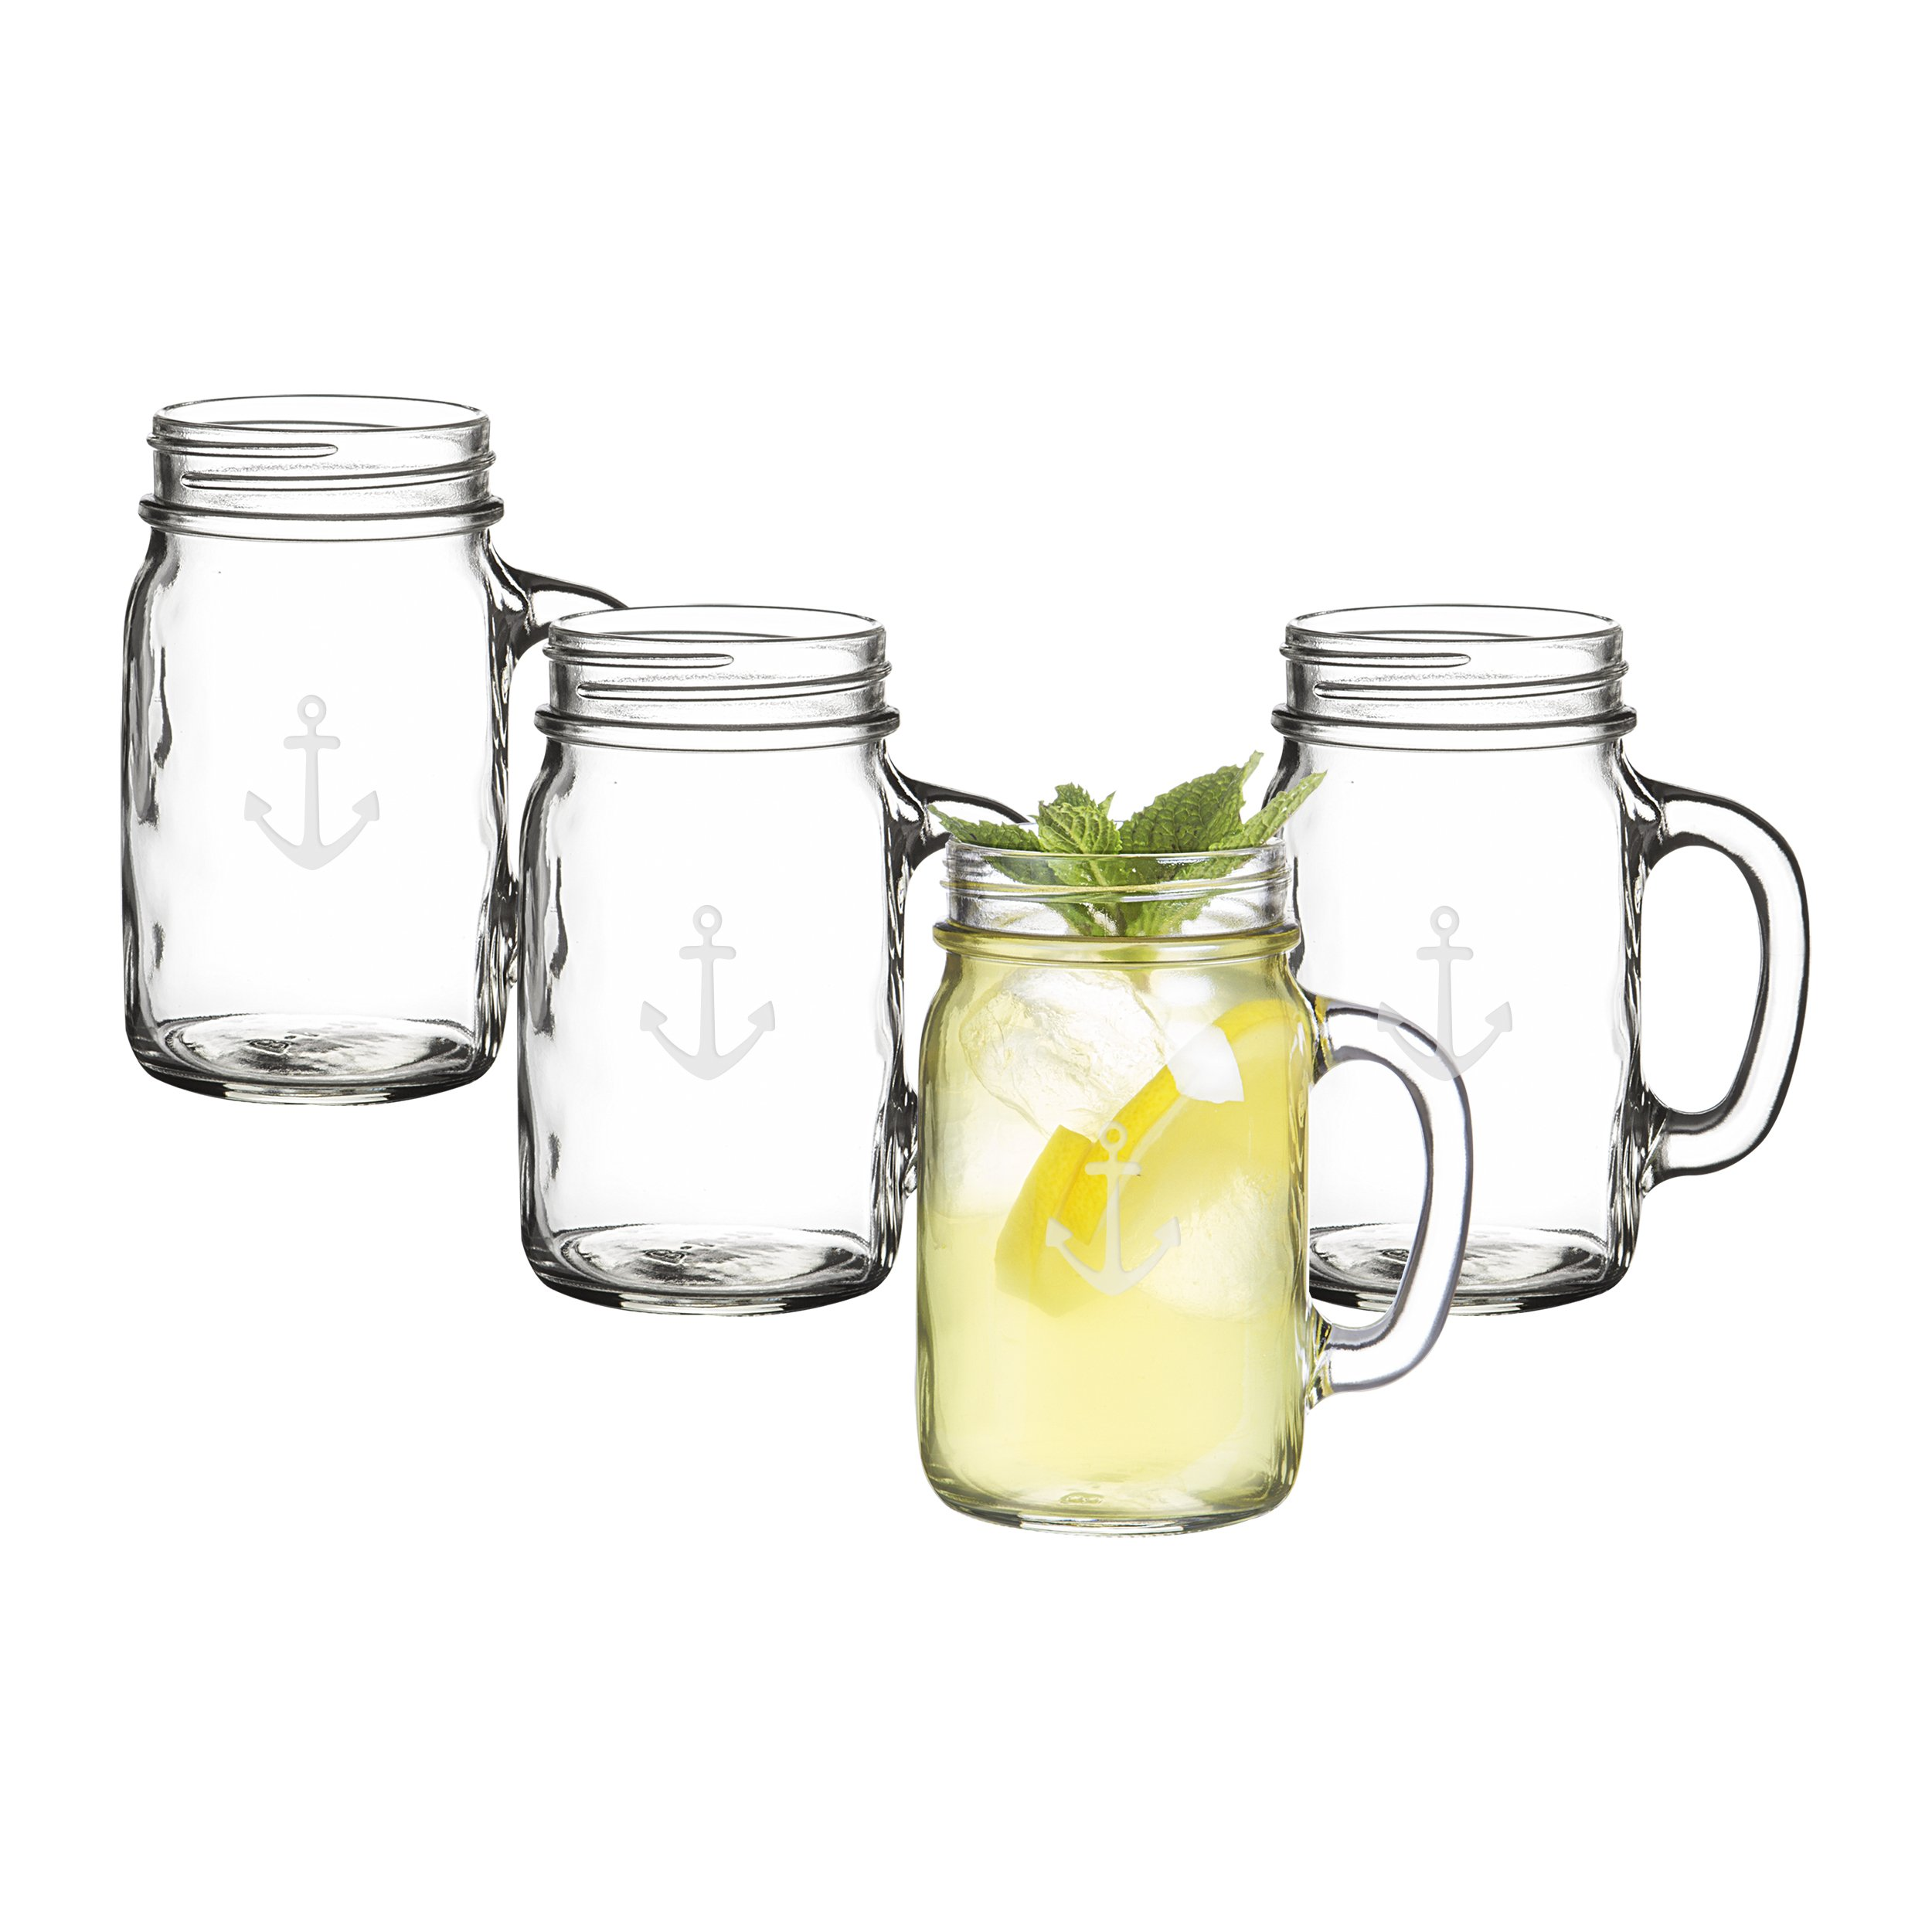 Cathy's Concepts CCA1190 Anchor Old Fashioned Drinking Jars Set Of 4